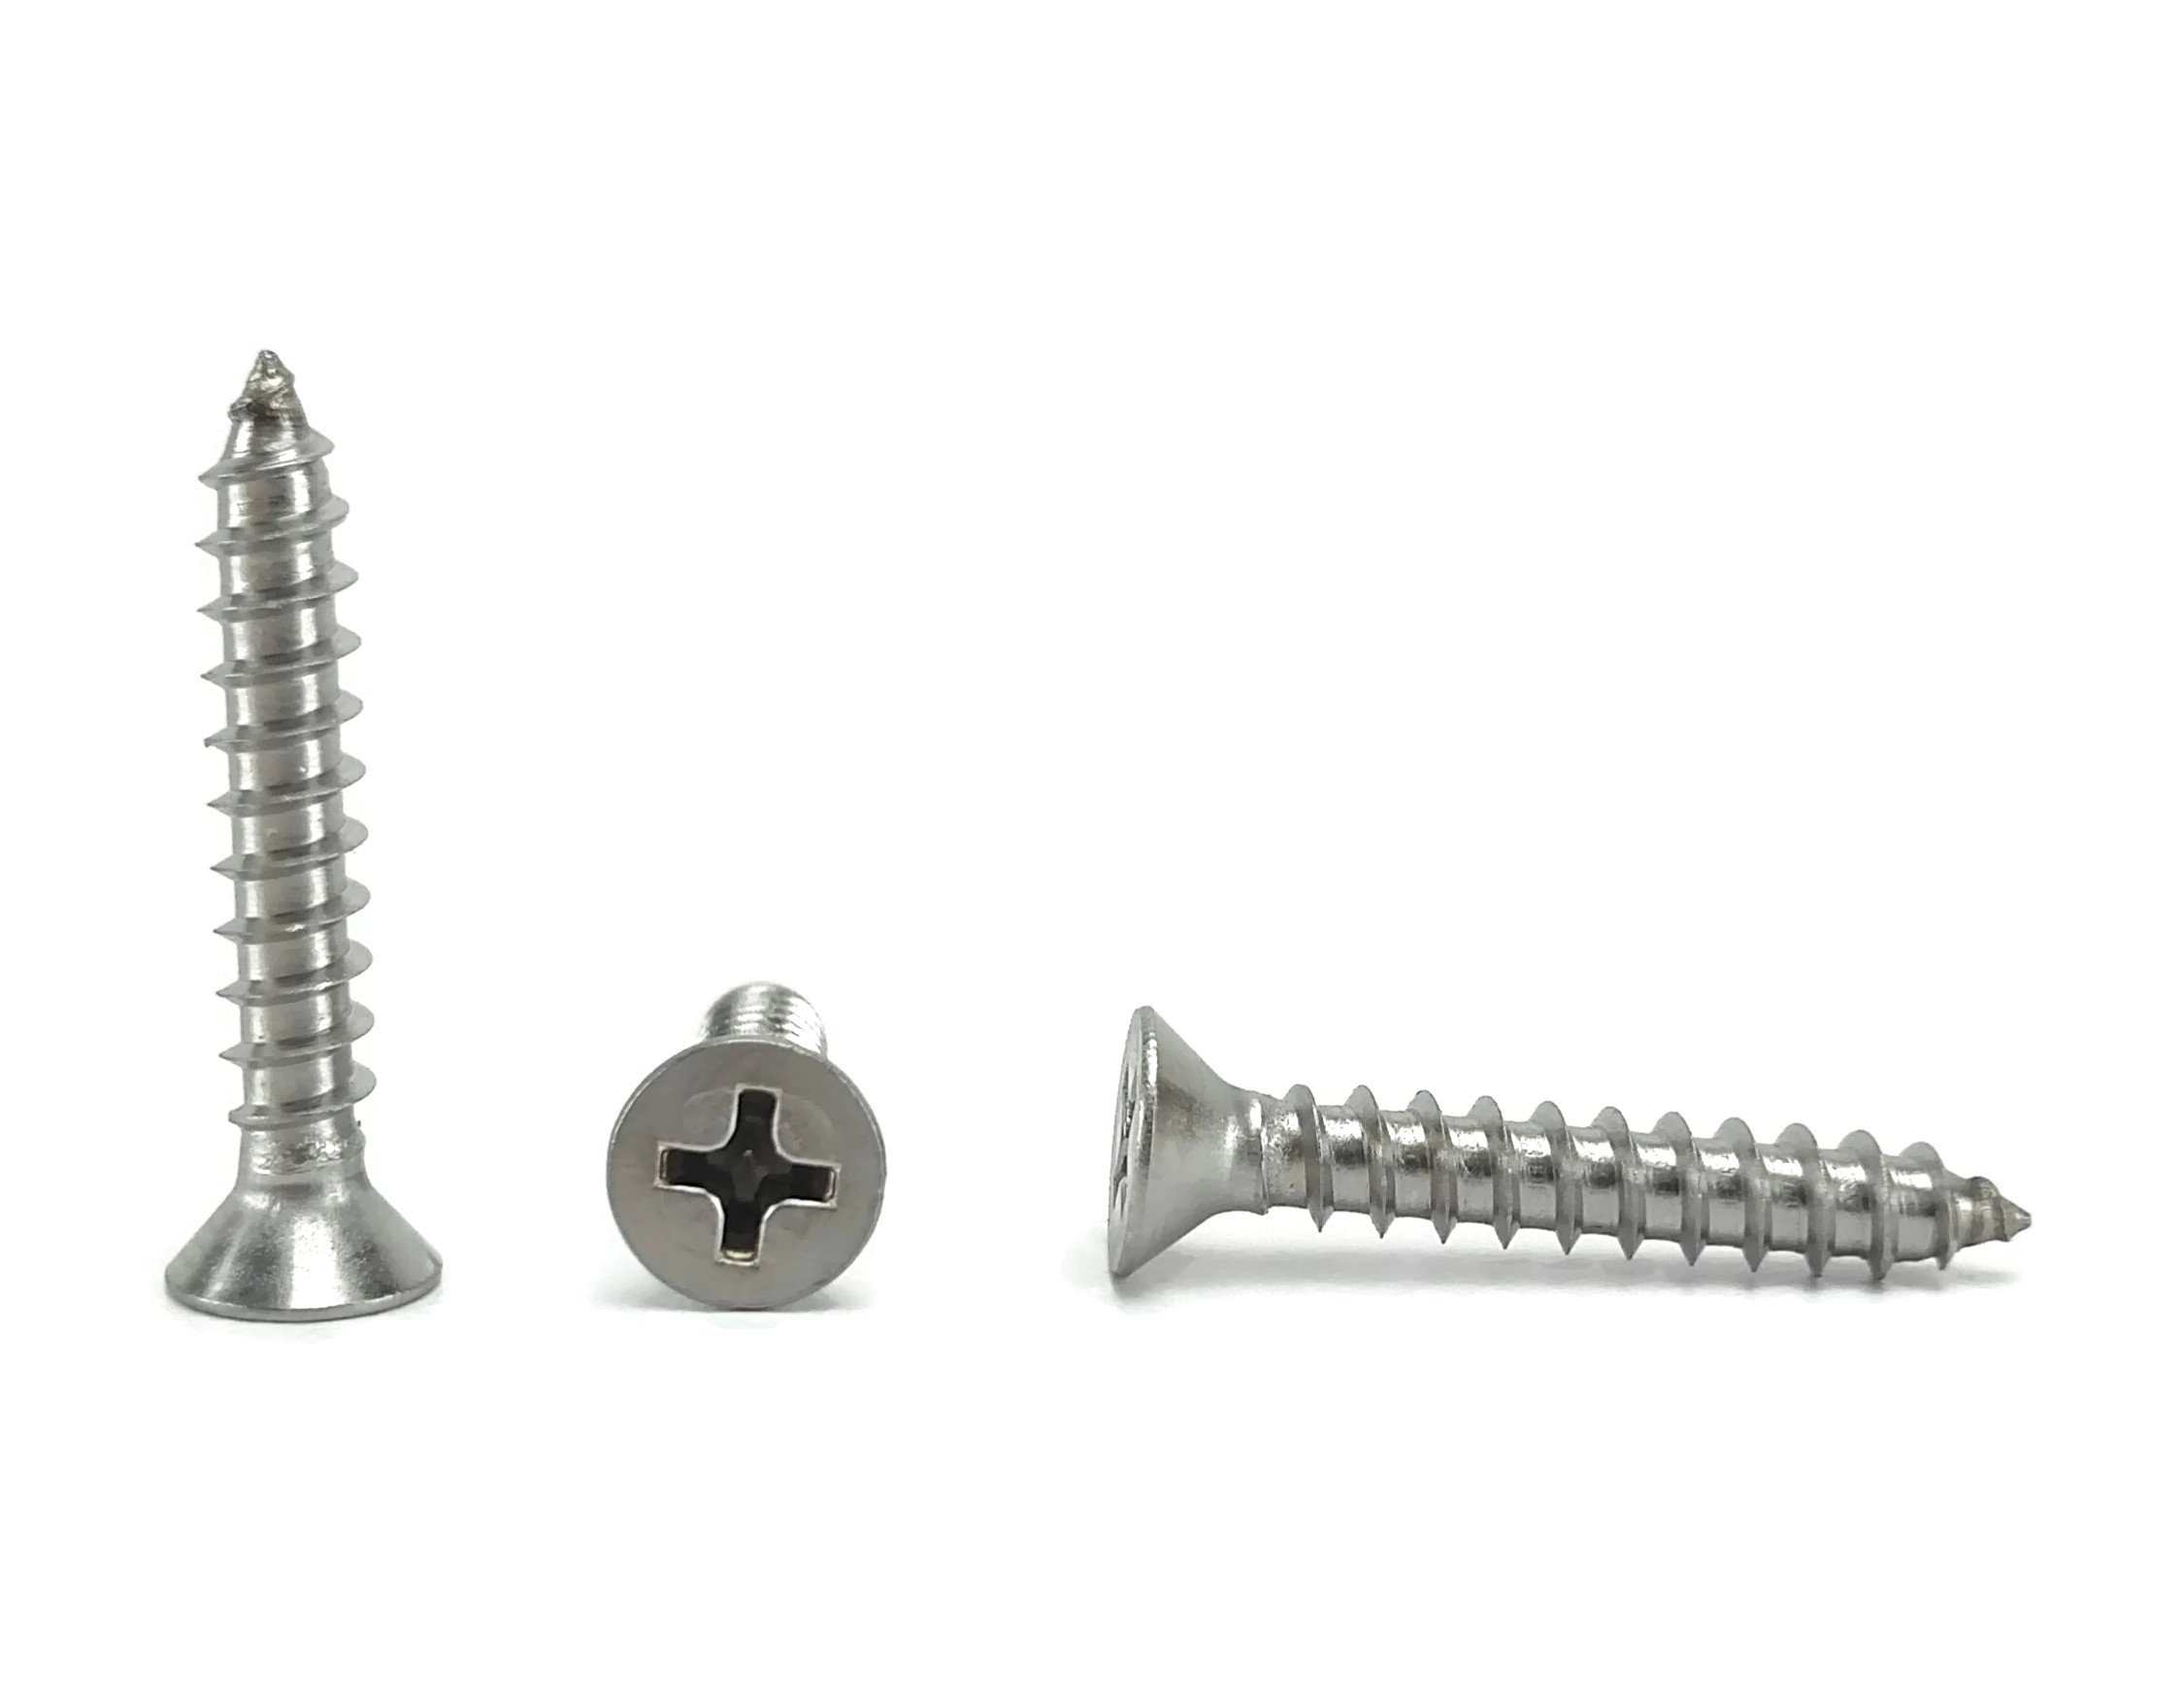 "#8 X 1"" Stainless Phillips Flat Head Sheetmetal Screw (1/2"" to 2"" in Listing) 100 Sheet Metal Screws, 82 Degrees (#8 x 1"")"